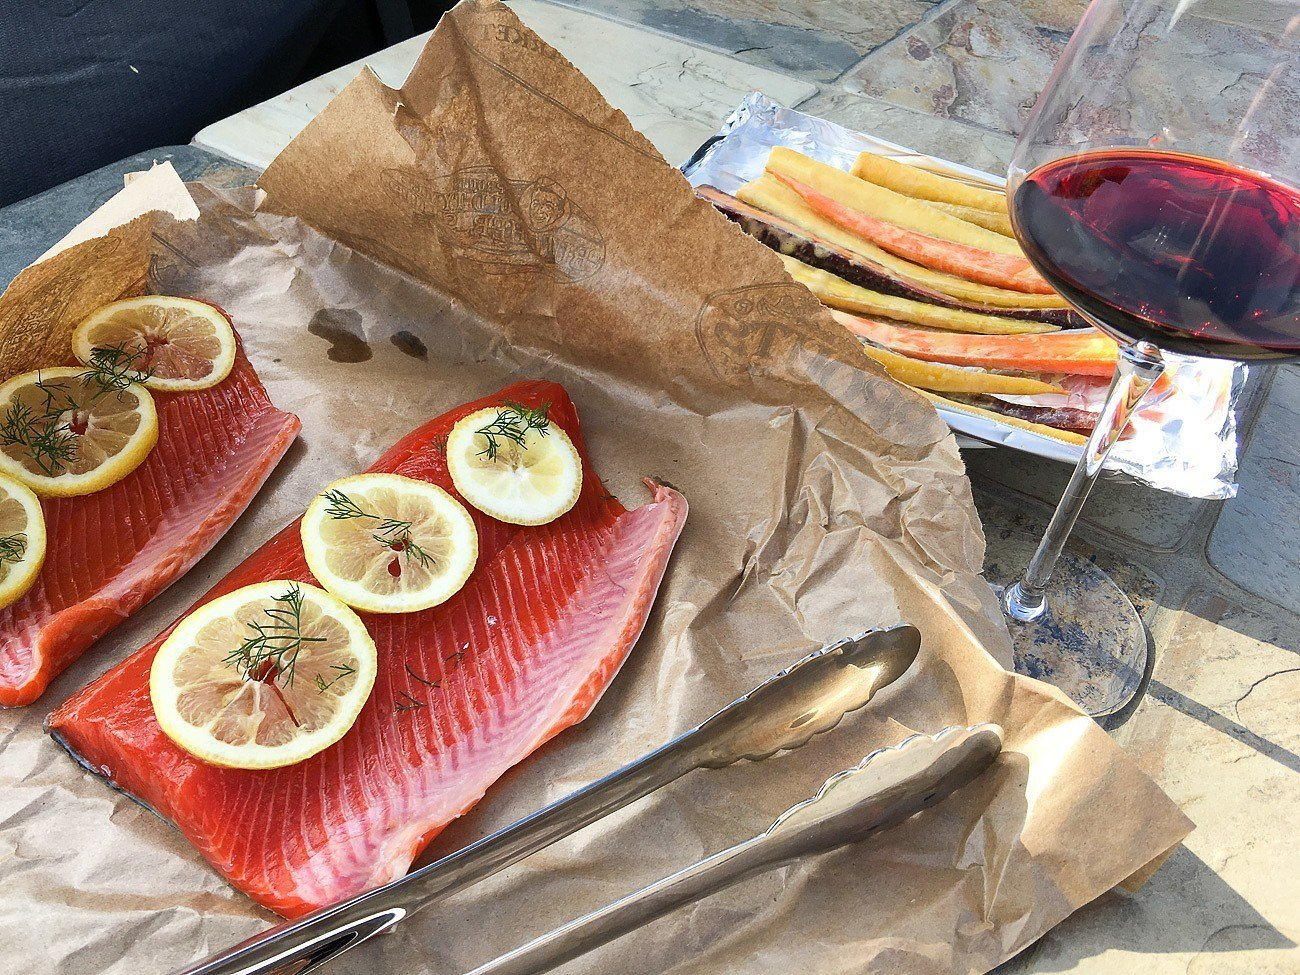 Grilling salmon on a cedar plank is easy.